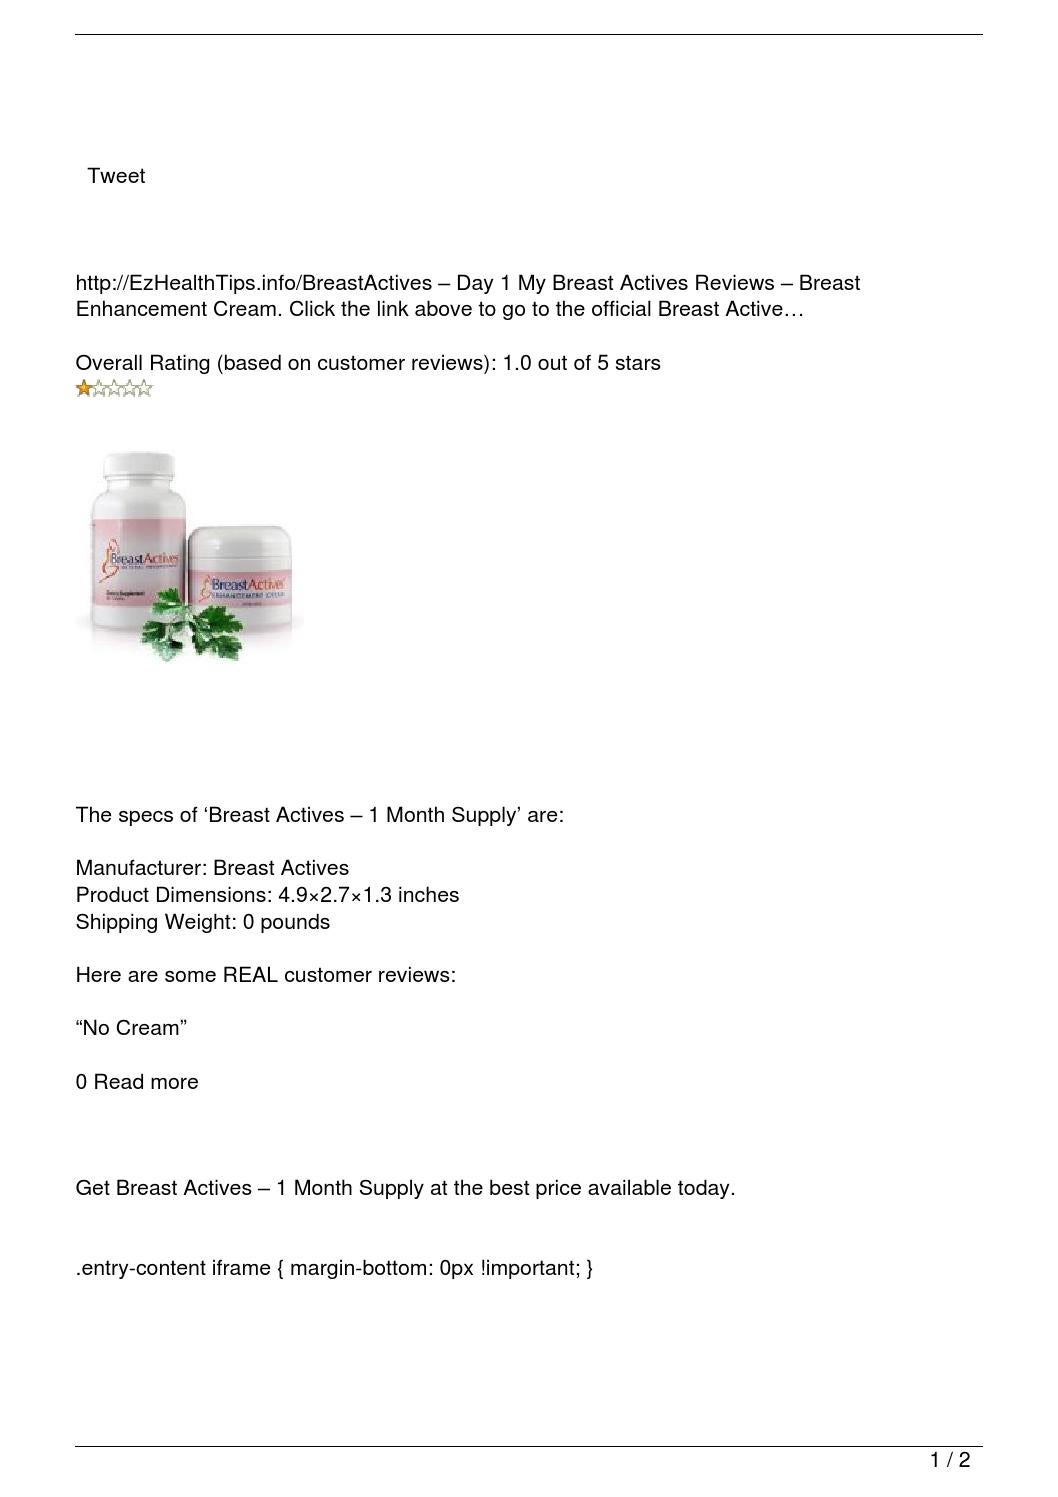 Breast Actives 8211 1 Month Supply Review By Dana Prasek Issuu